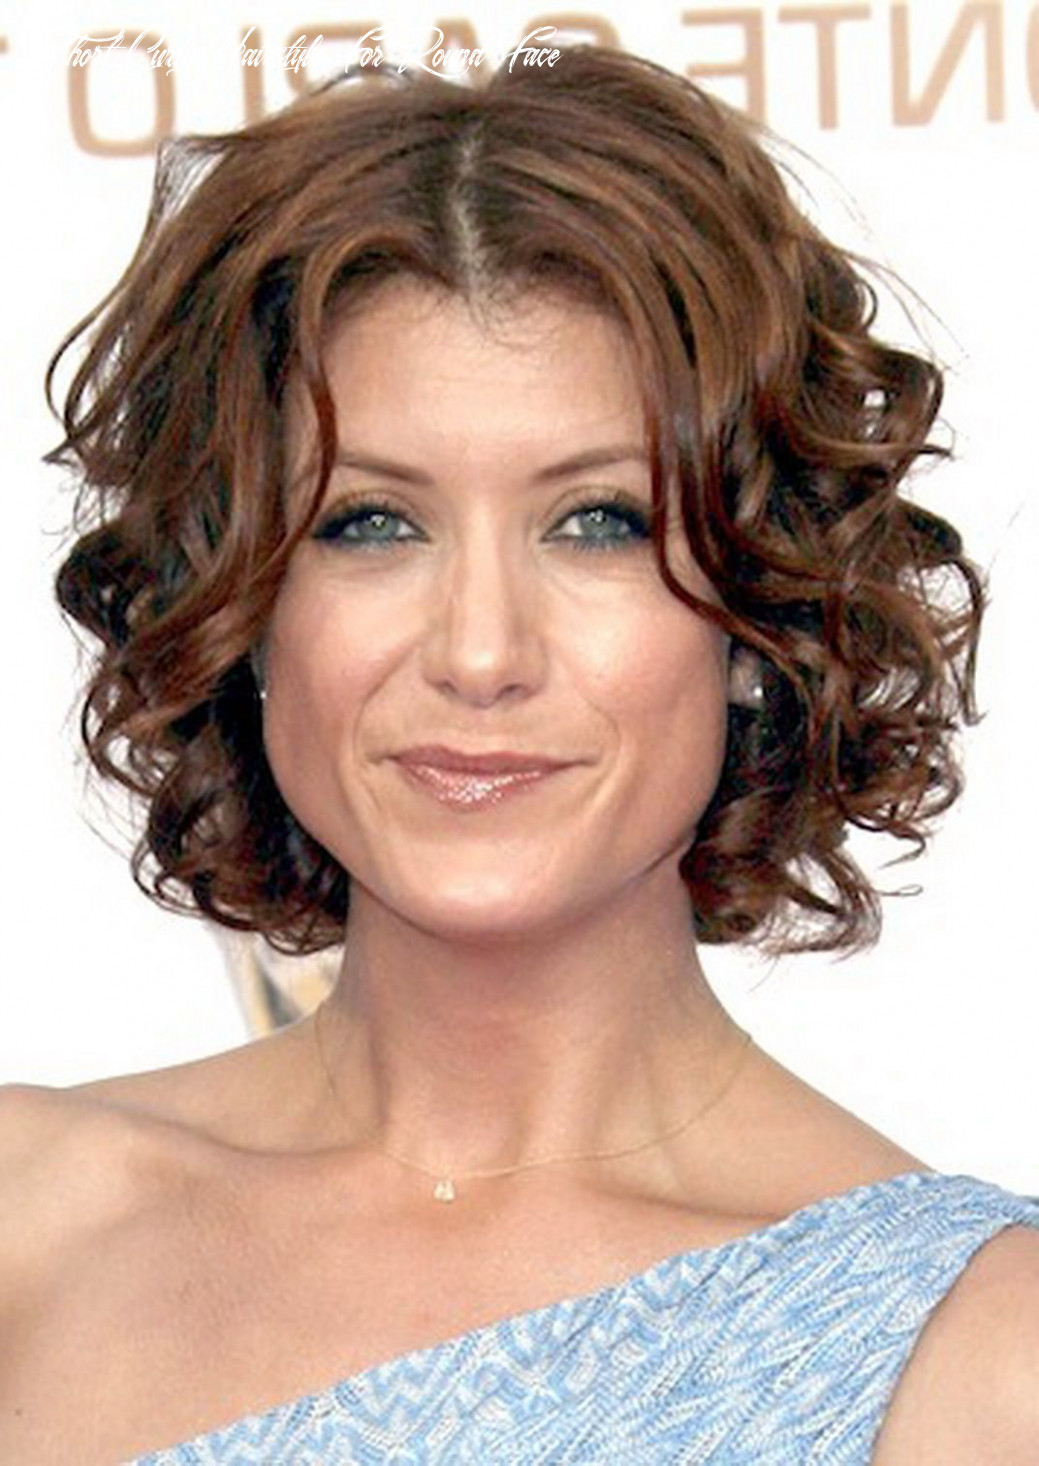 Medium curly hairstyles for round faces curly short hair round